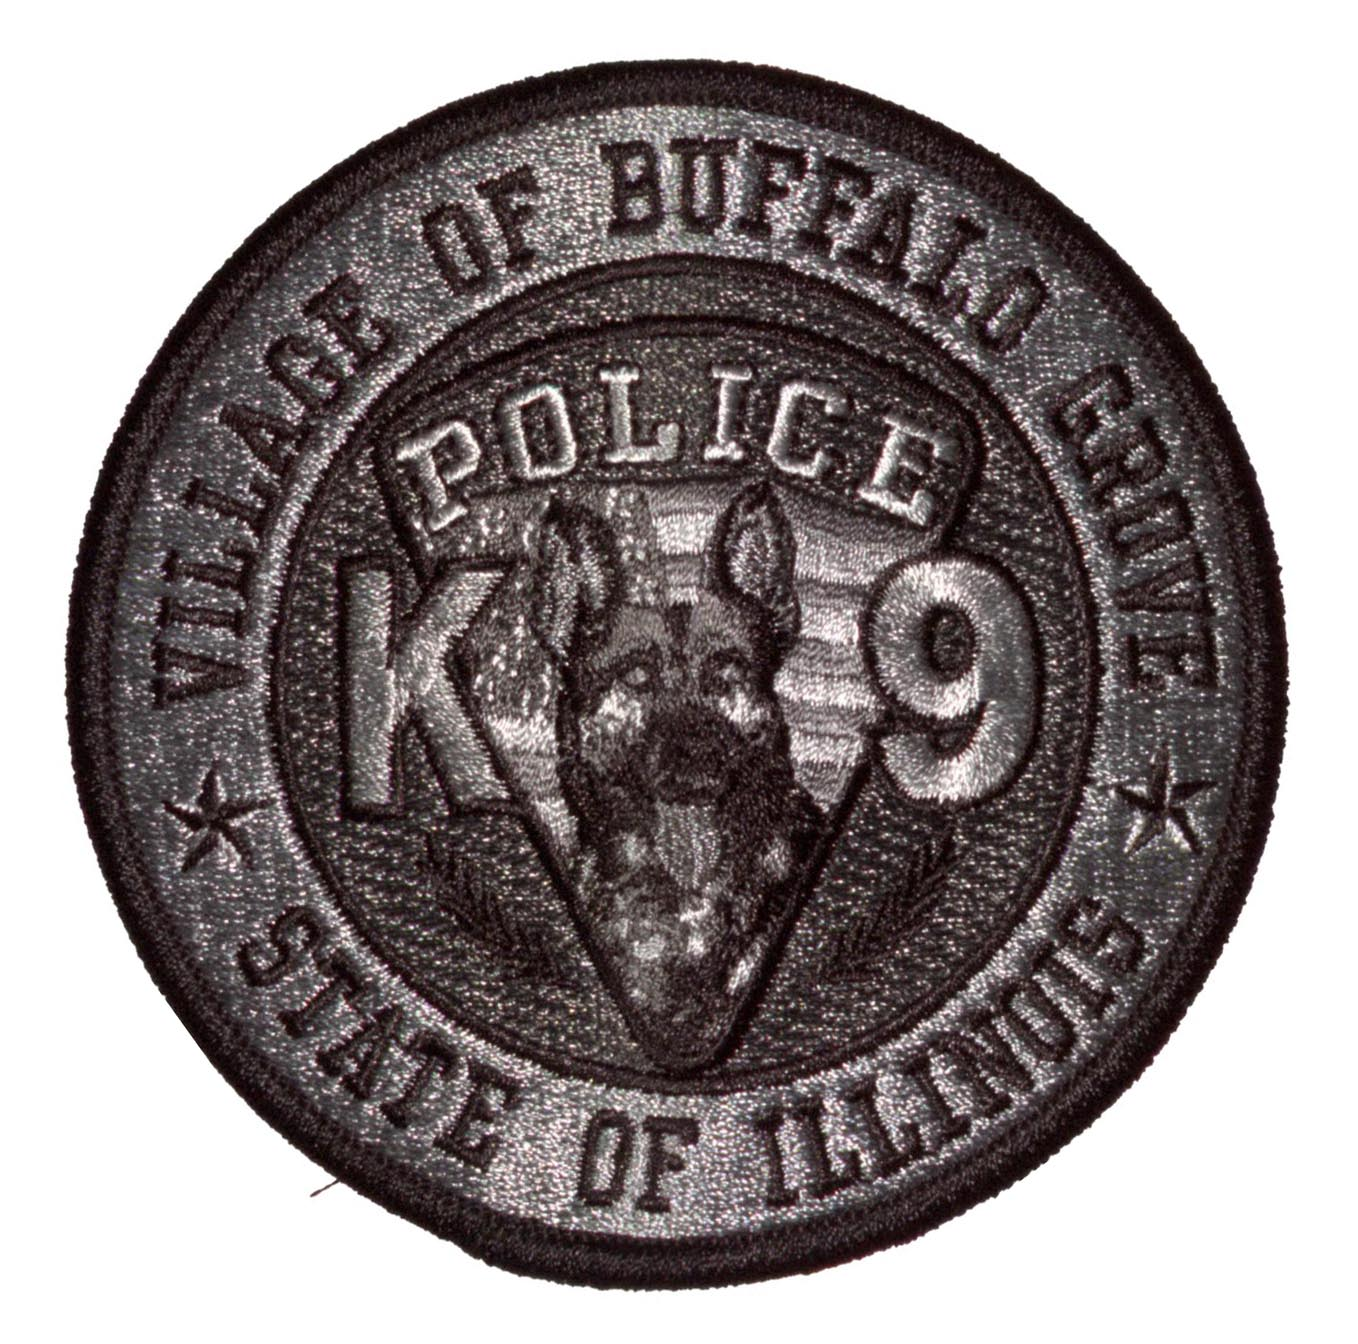 K9 Unit patches